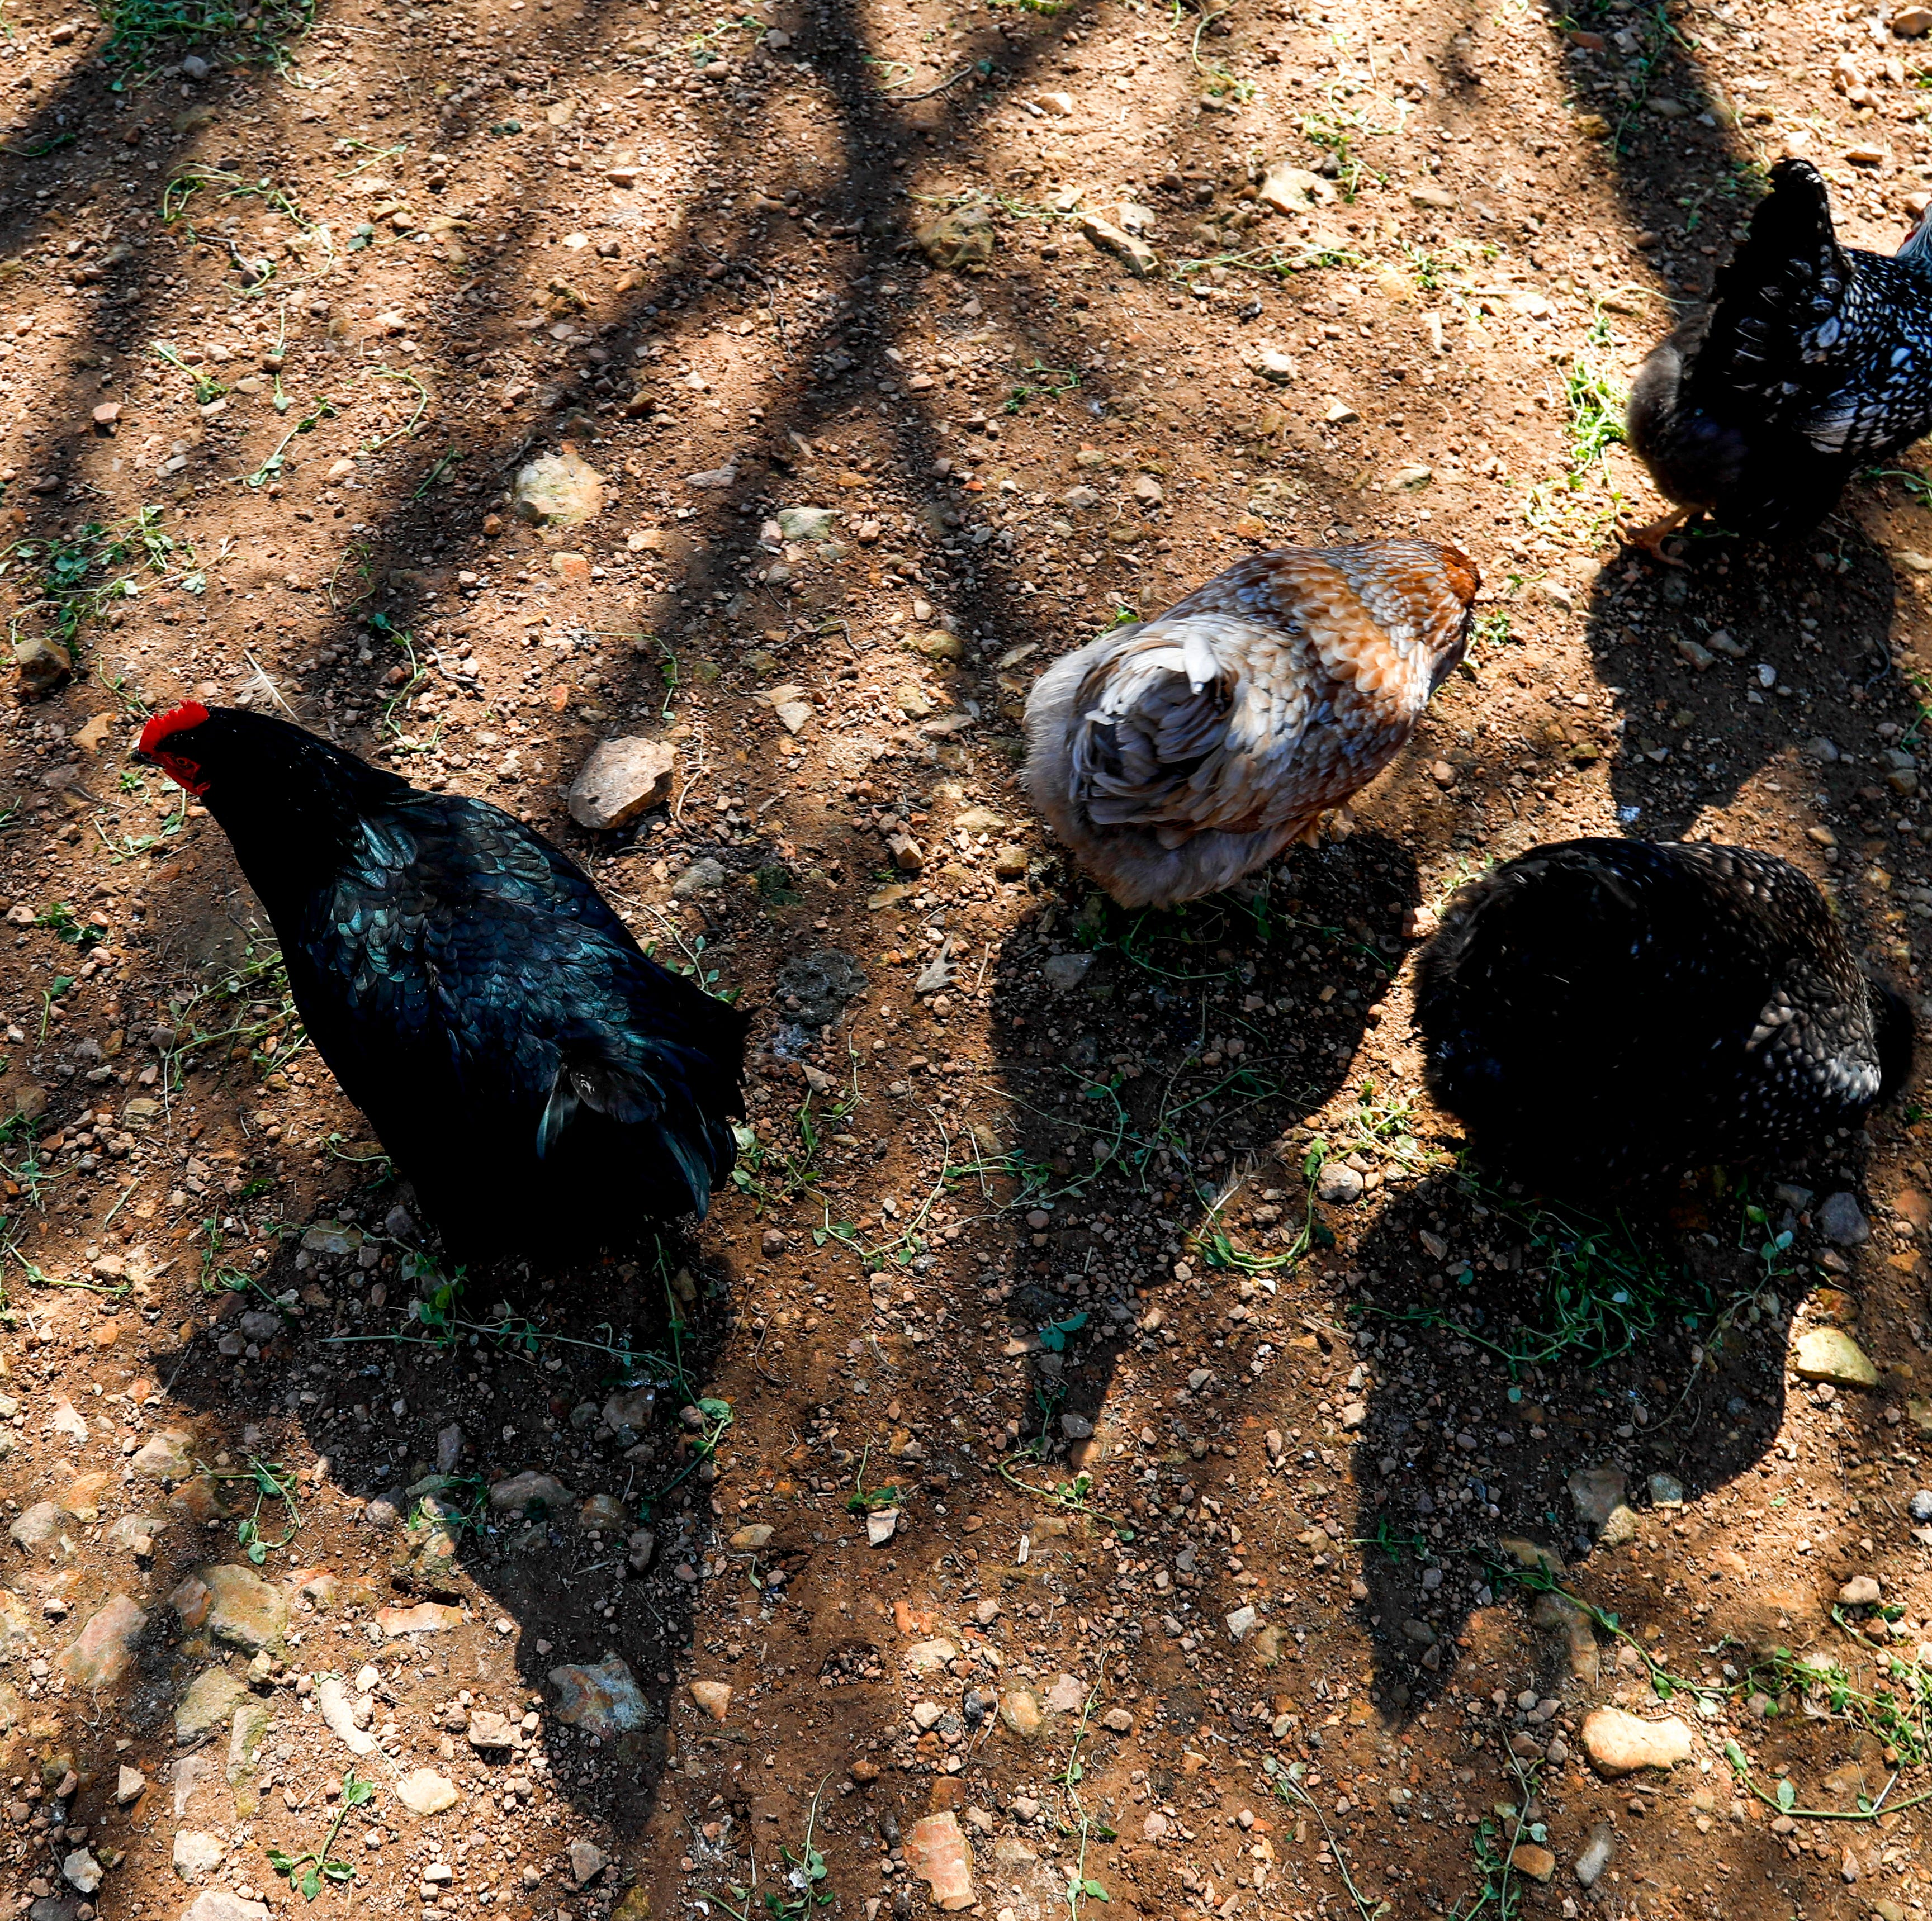 Backyard chicken coops going under review in Montgomery County